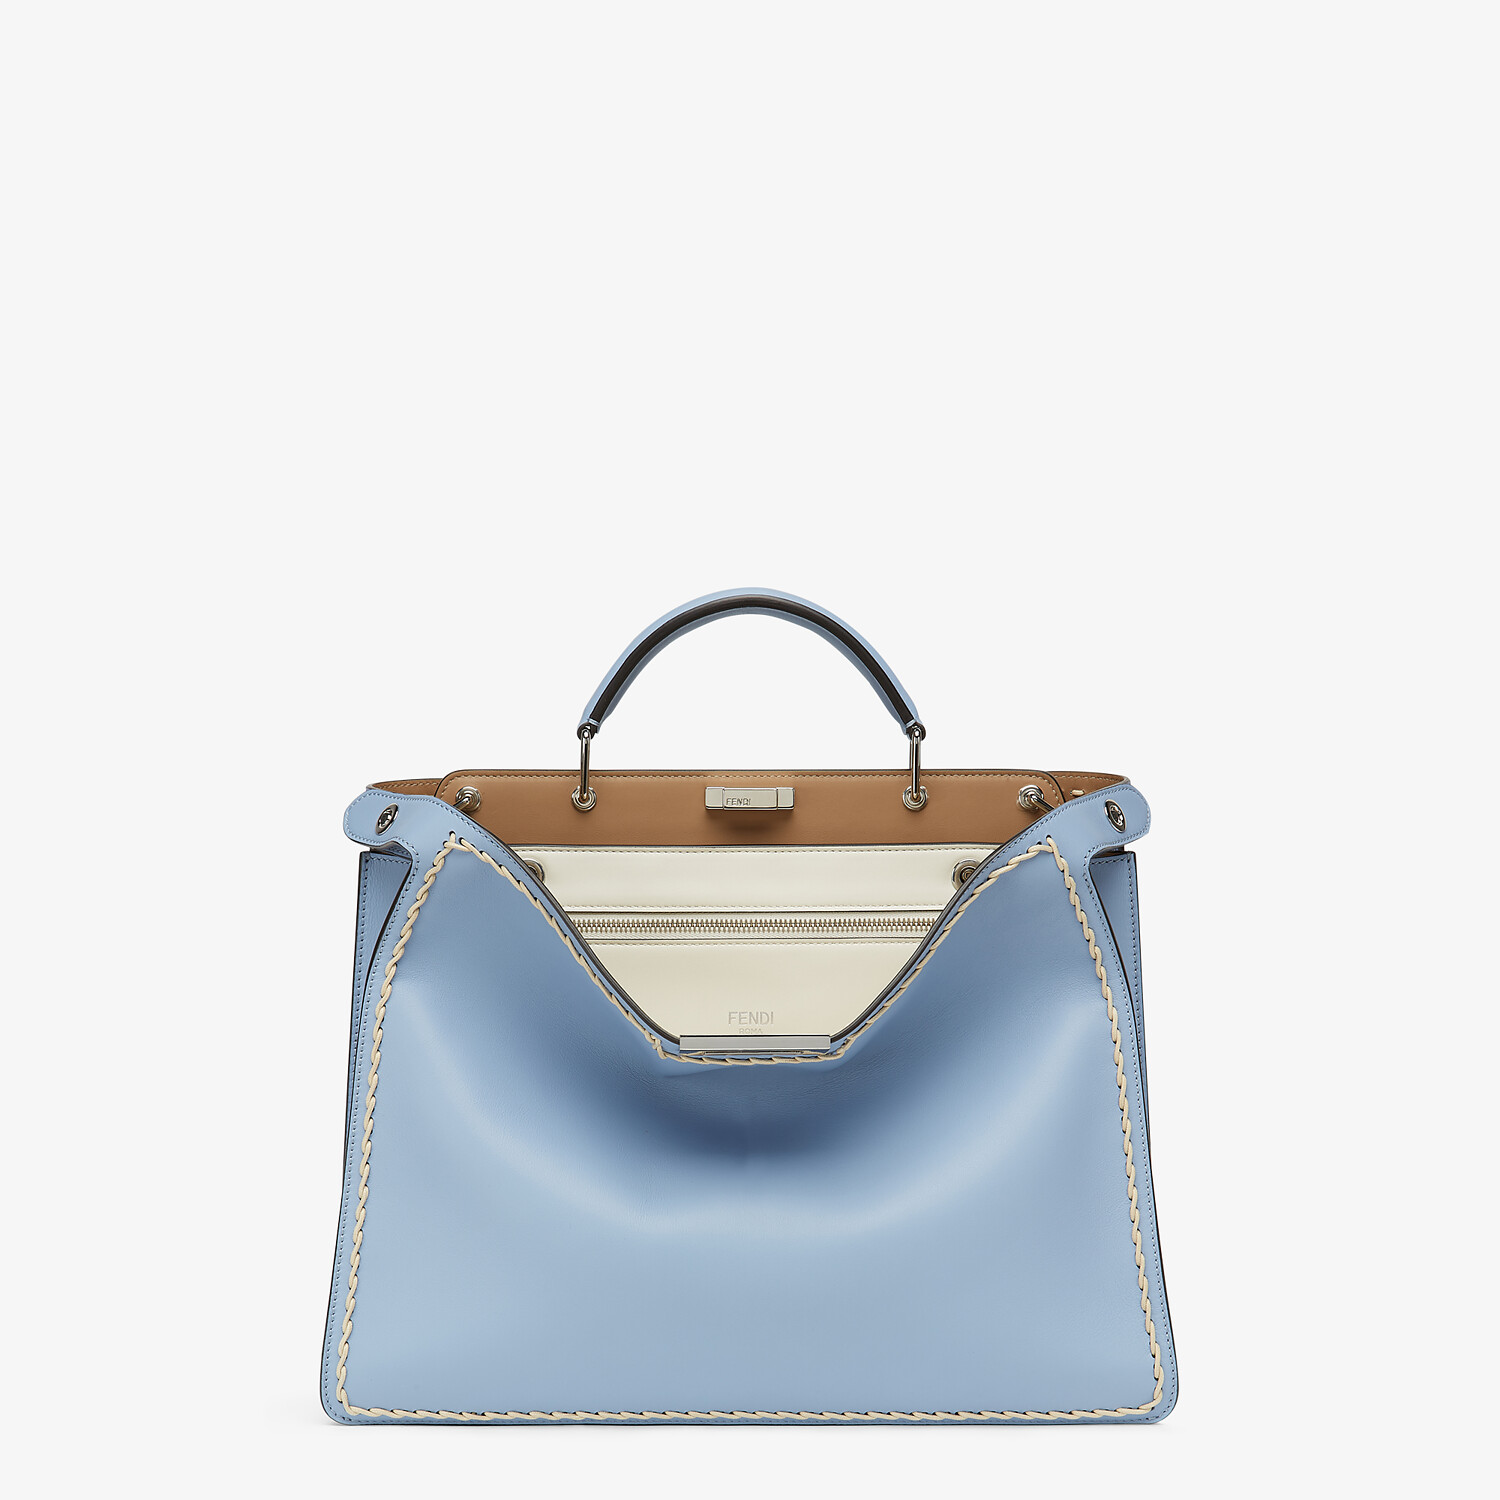 FENDI MEDIUM PEEKABOO ISEEU - Light blue leather bag - view 1 detail